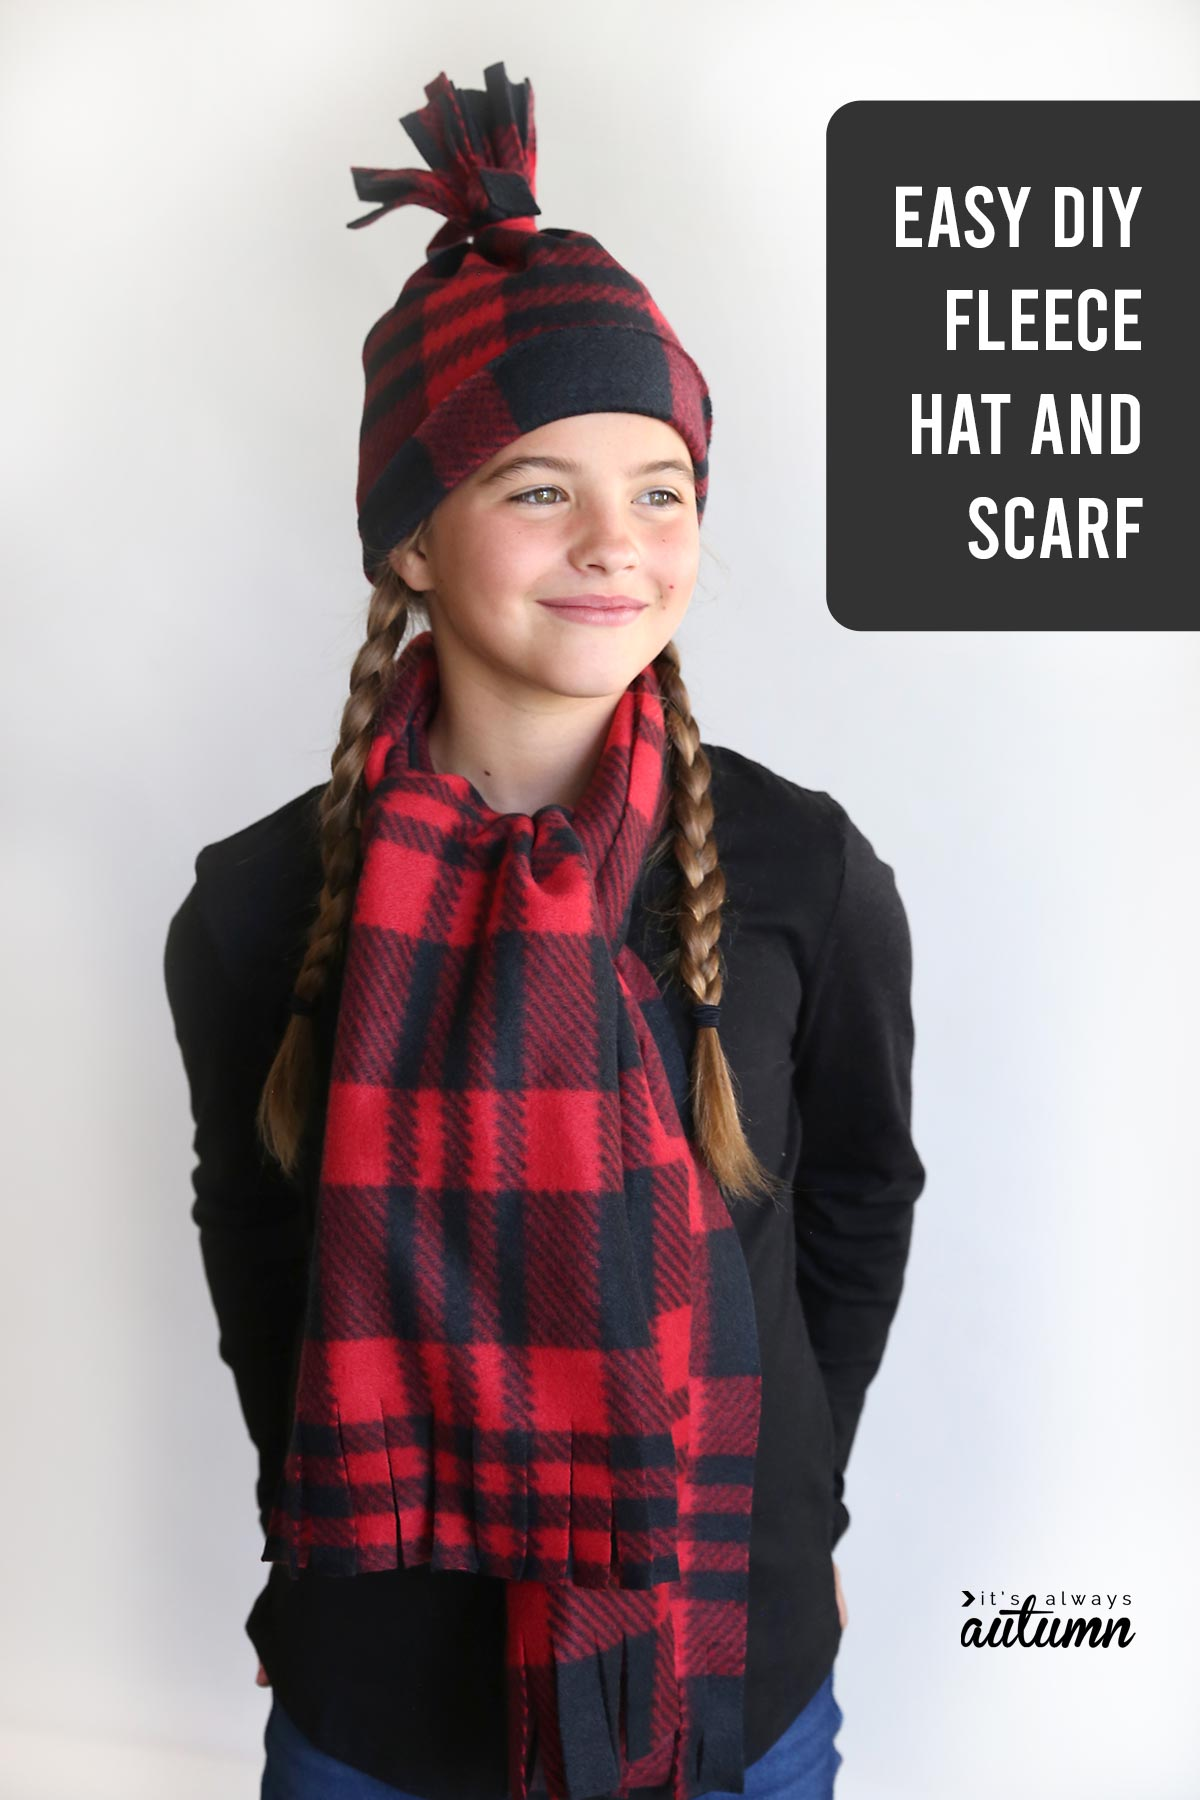 You can make this adorable fleece hat and scarf set in under 20 minutes!